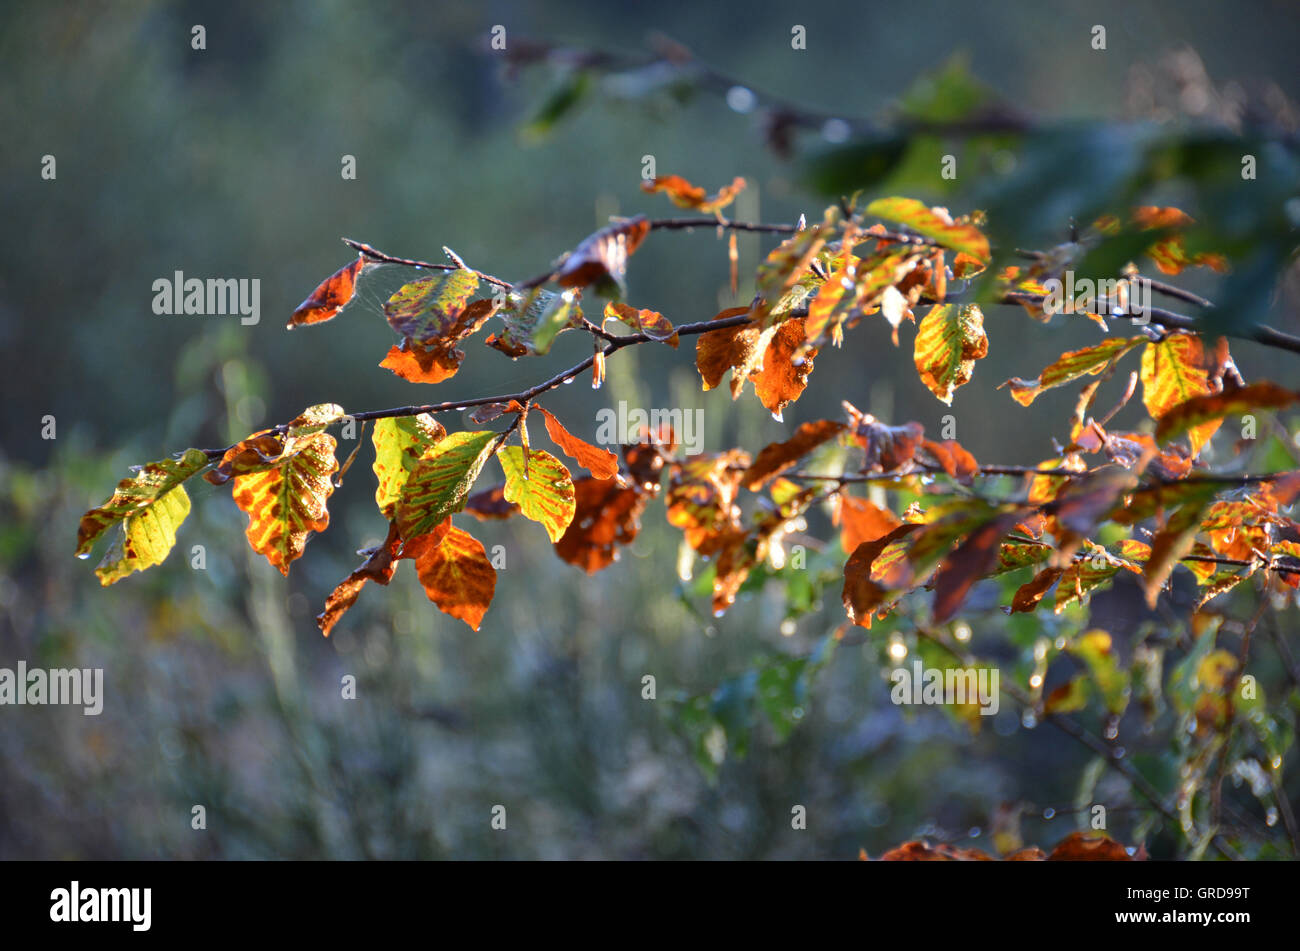 Beech Twig In Autumn - Stock Image